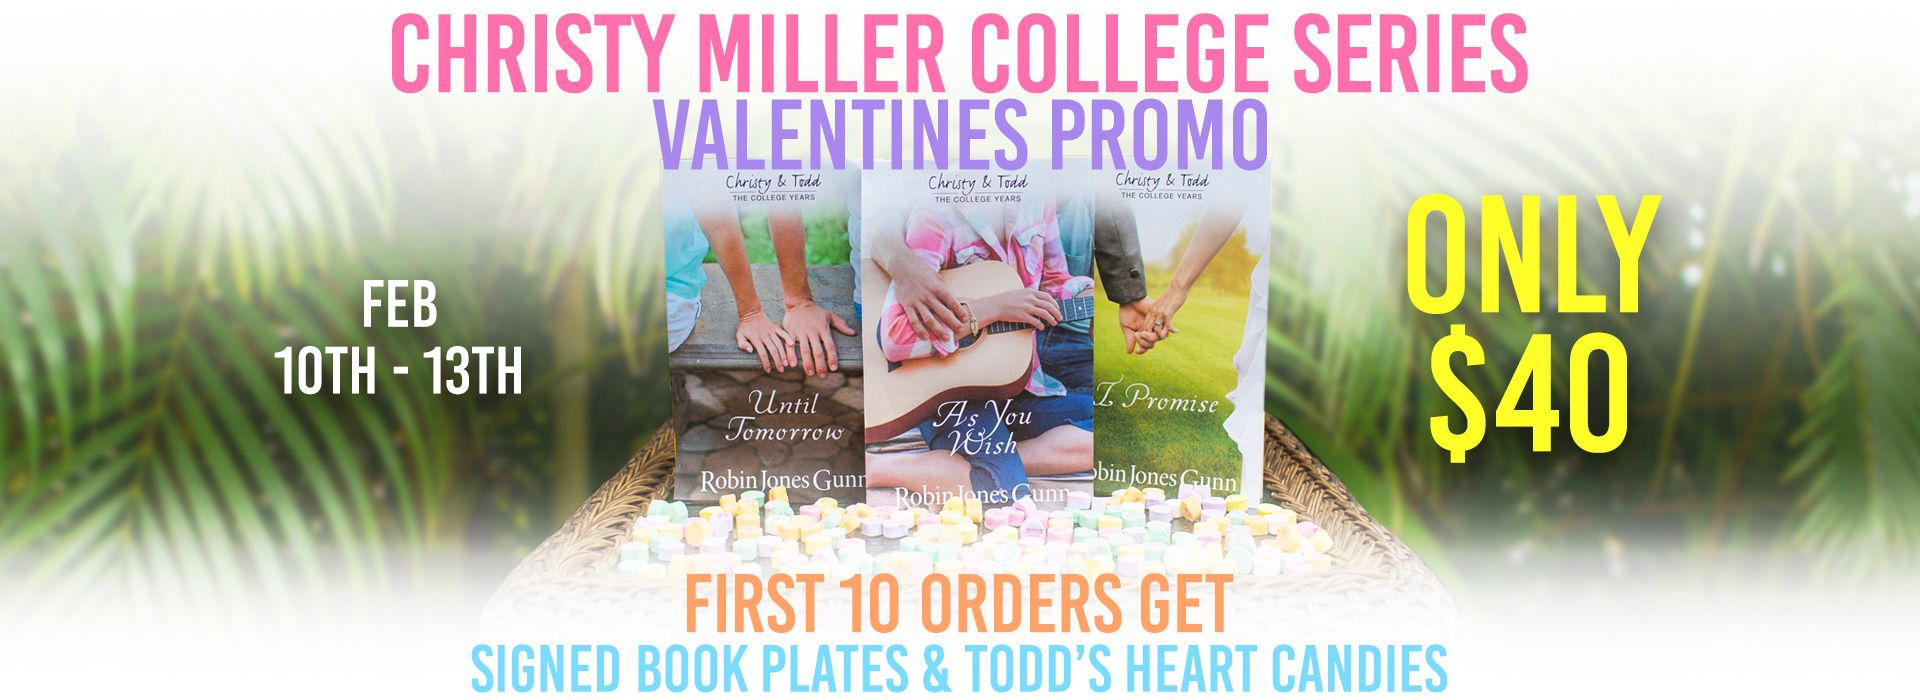 Valentines Promo! The Complete Christy Miller College Series ONLY $40! Plus the first 10 orders get signed book plates for all 3 books and cute Todd's Heart Candy. Only at #bookshoprobingunn #christymoment #valentinesgift